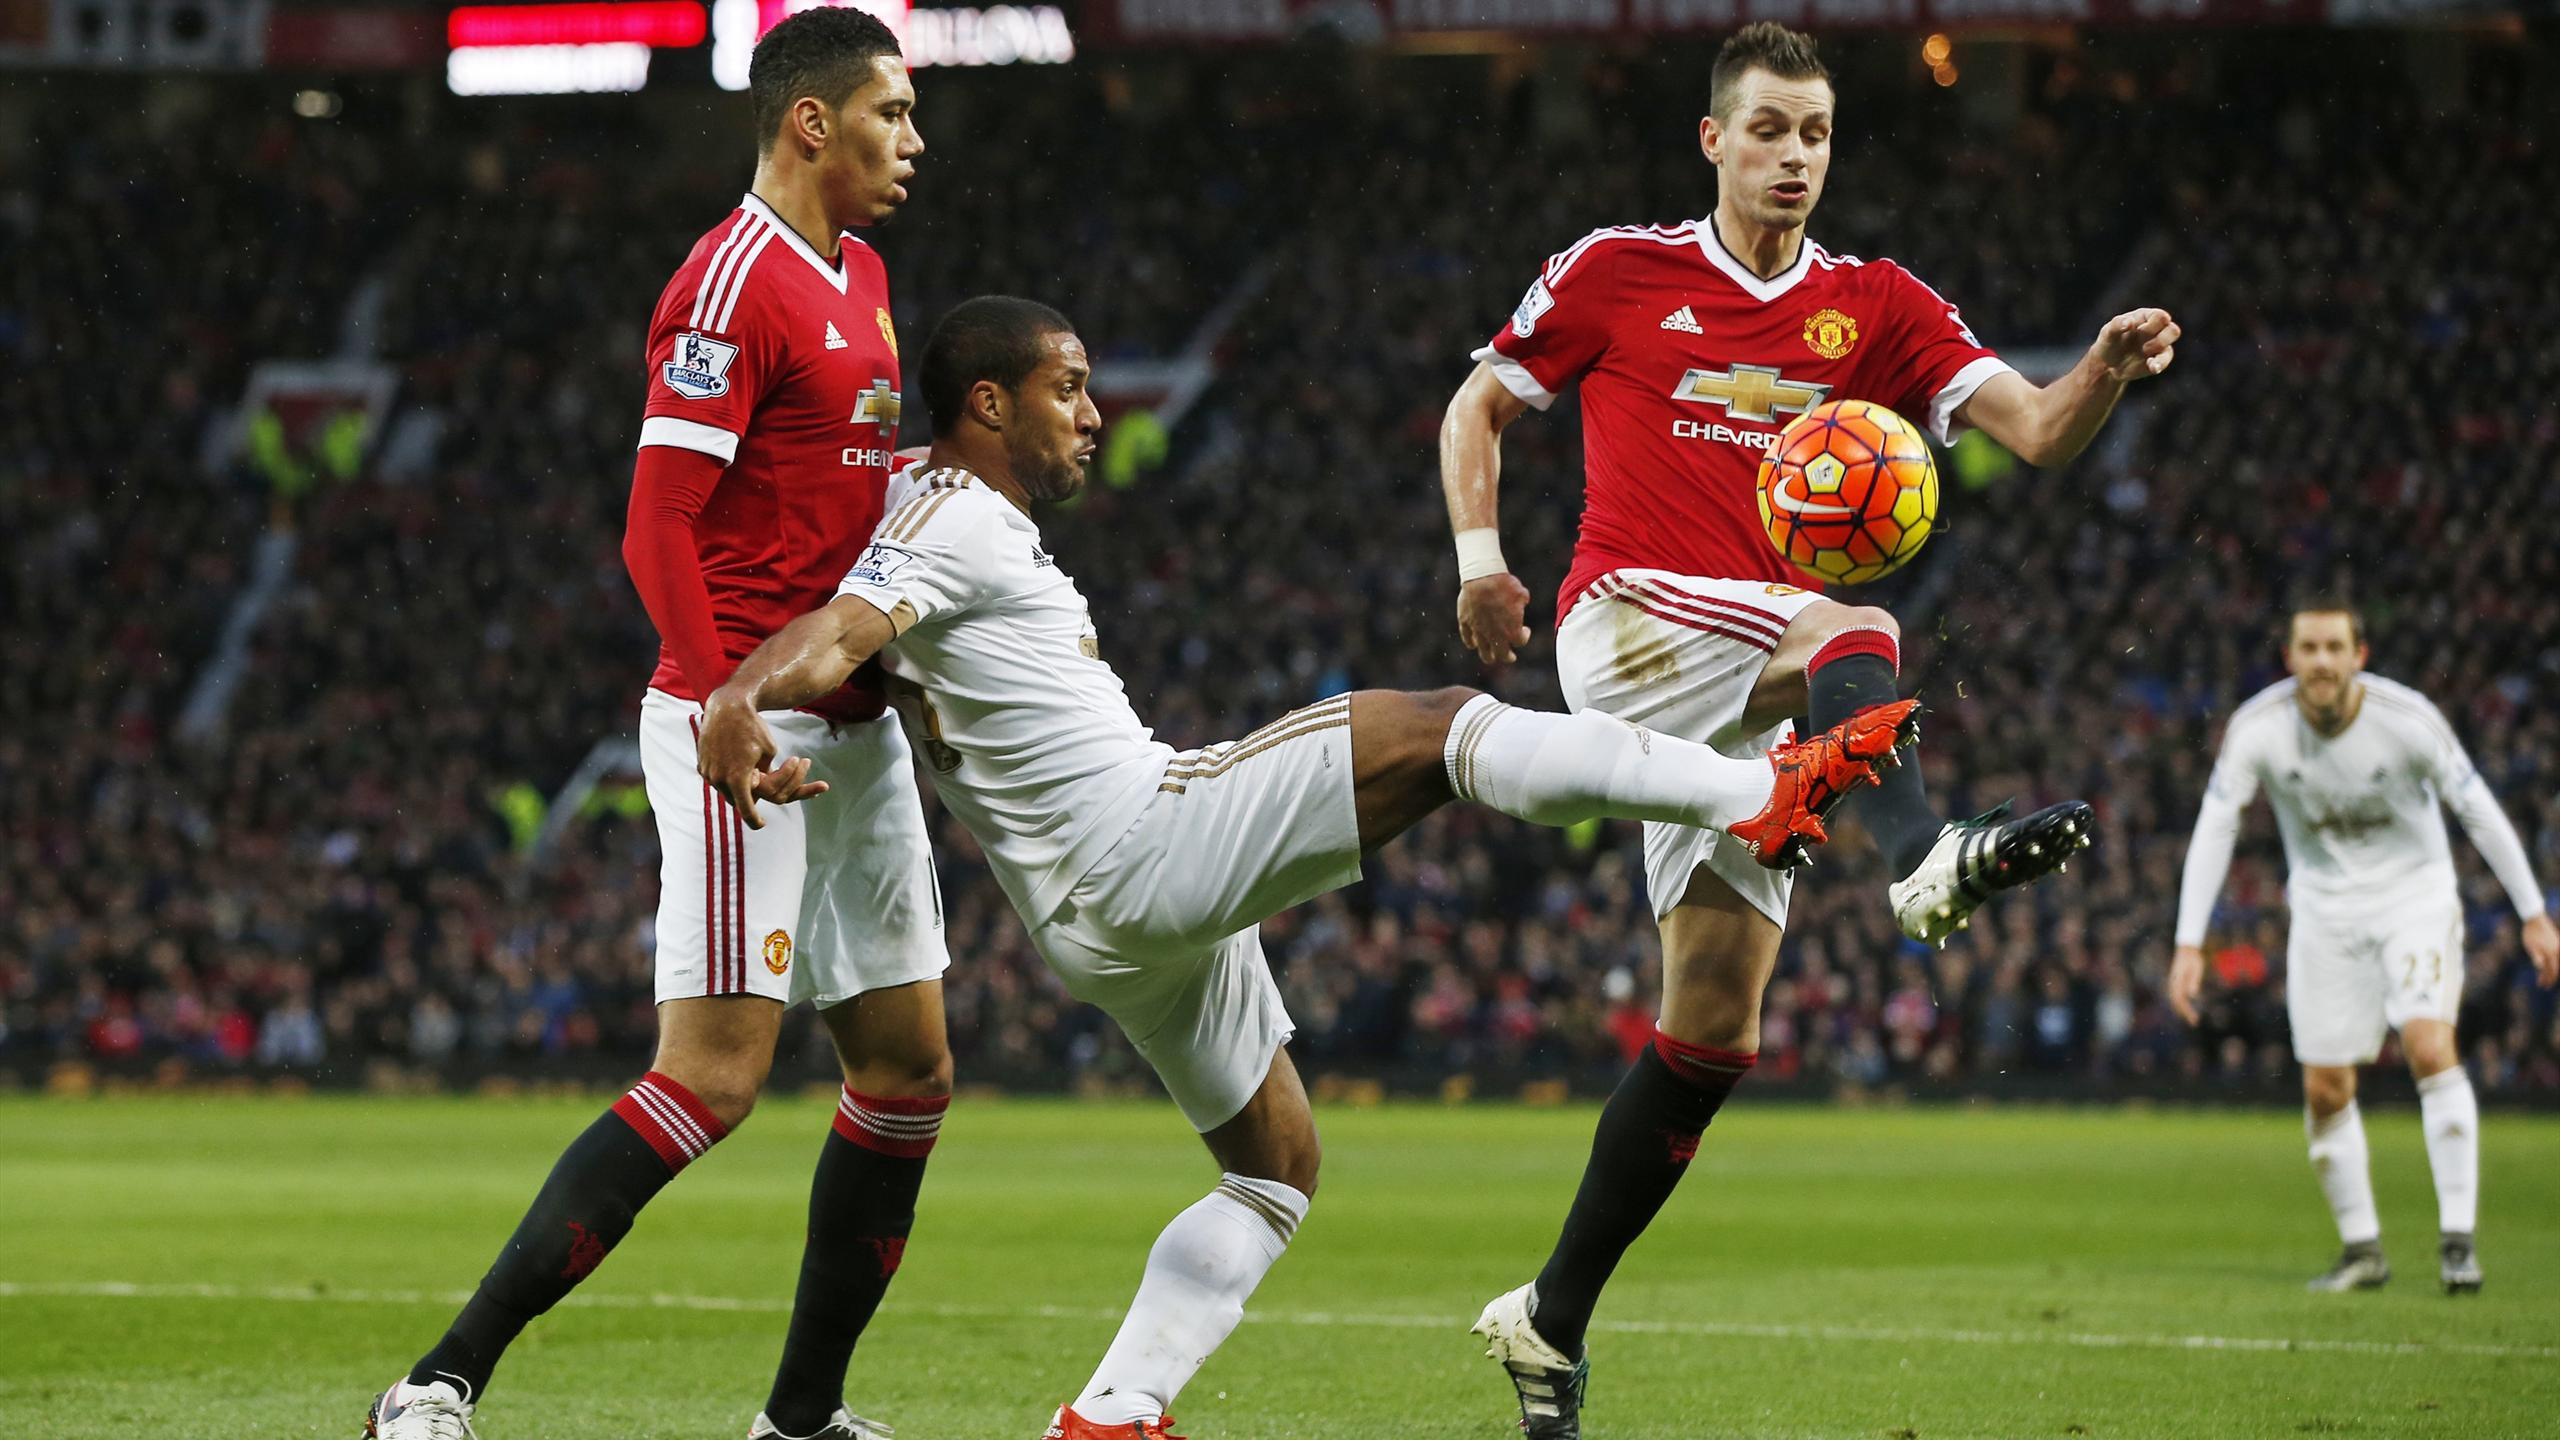 Swansea's Wayne Routledge under pressure against Manchester United